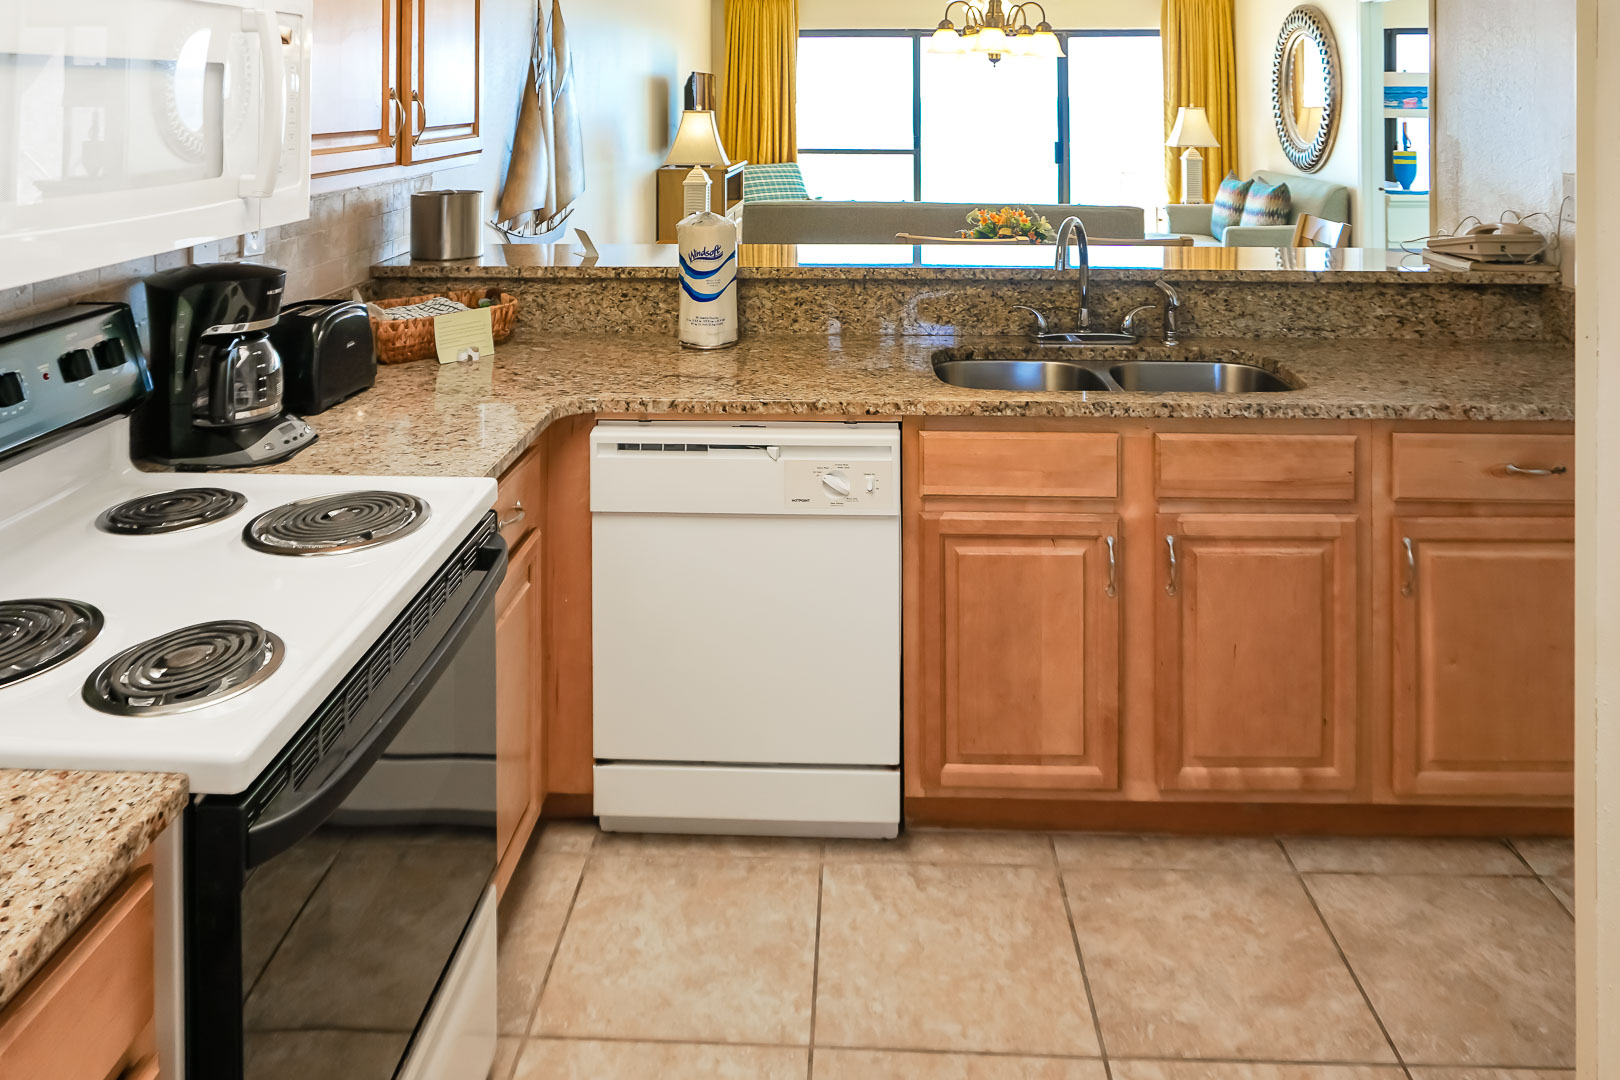 A fully equipped kitchen at VRI's Landmark Holiday Beach Resort in Panama City, Florida.